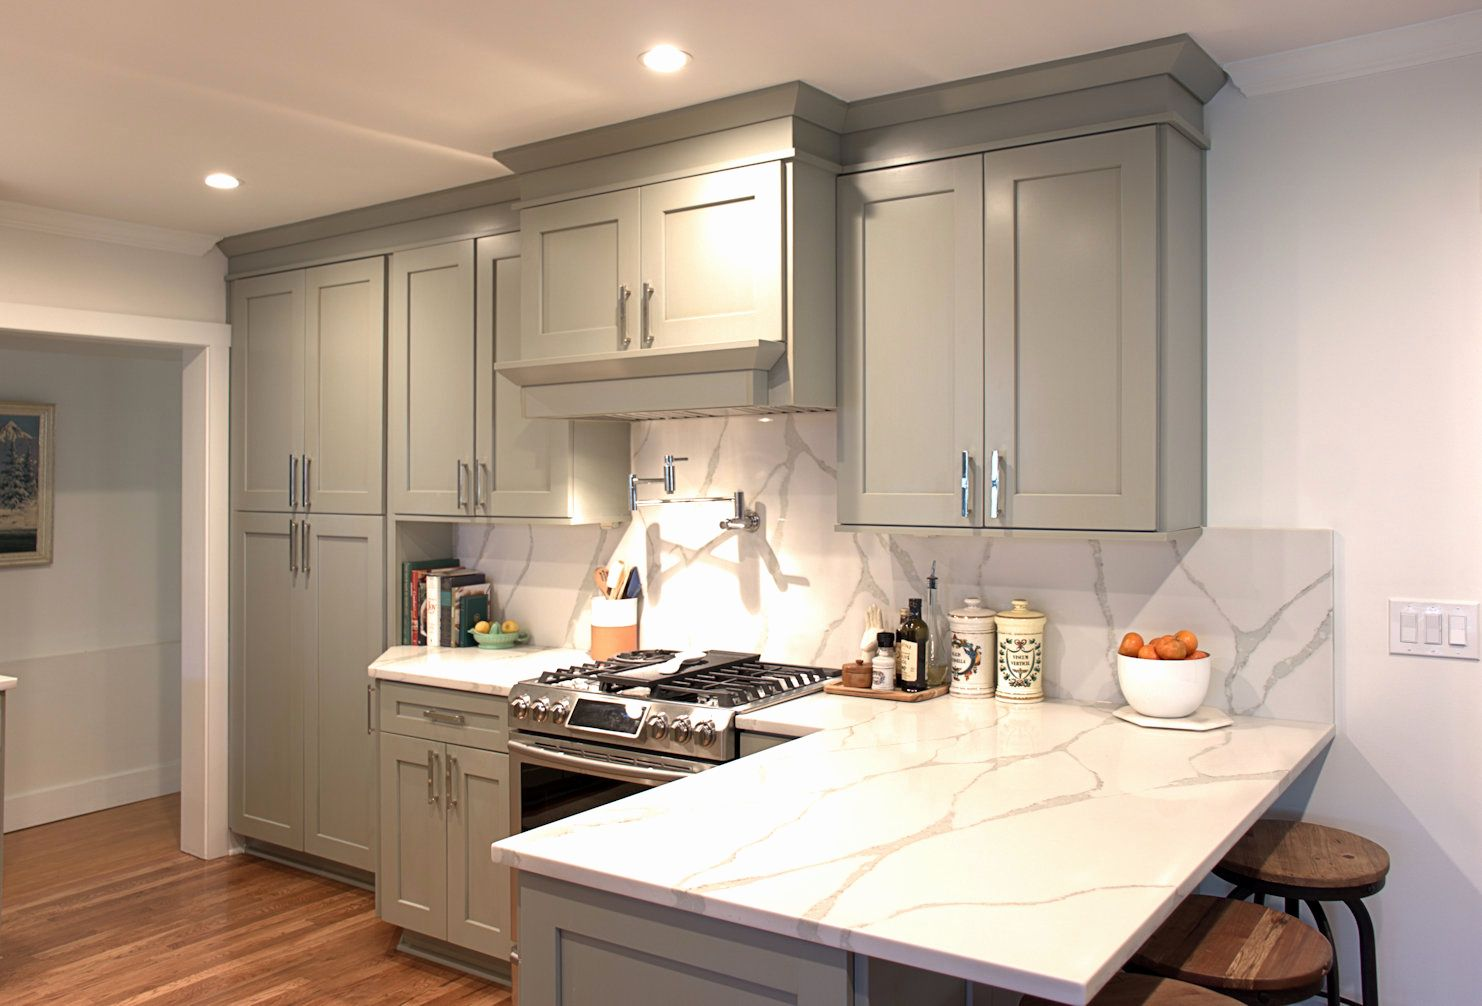 Crown Molding Transition To Kitchen Cabinets Fresh Cabinet Crown Vs House Crown Kitchen Design Kitchen Cabinet Design Kitchen Cabinets To Ceiling